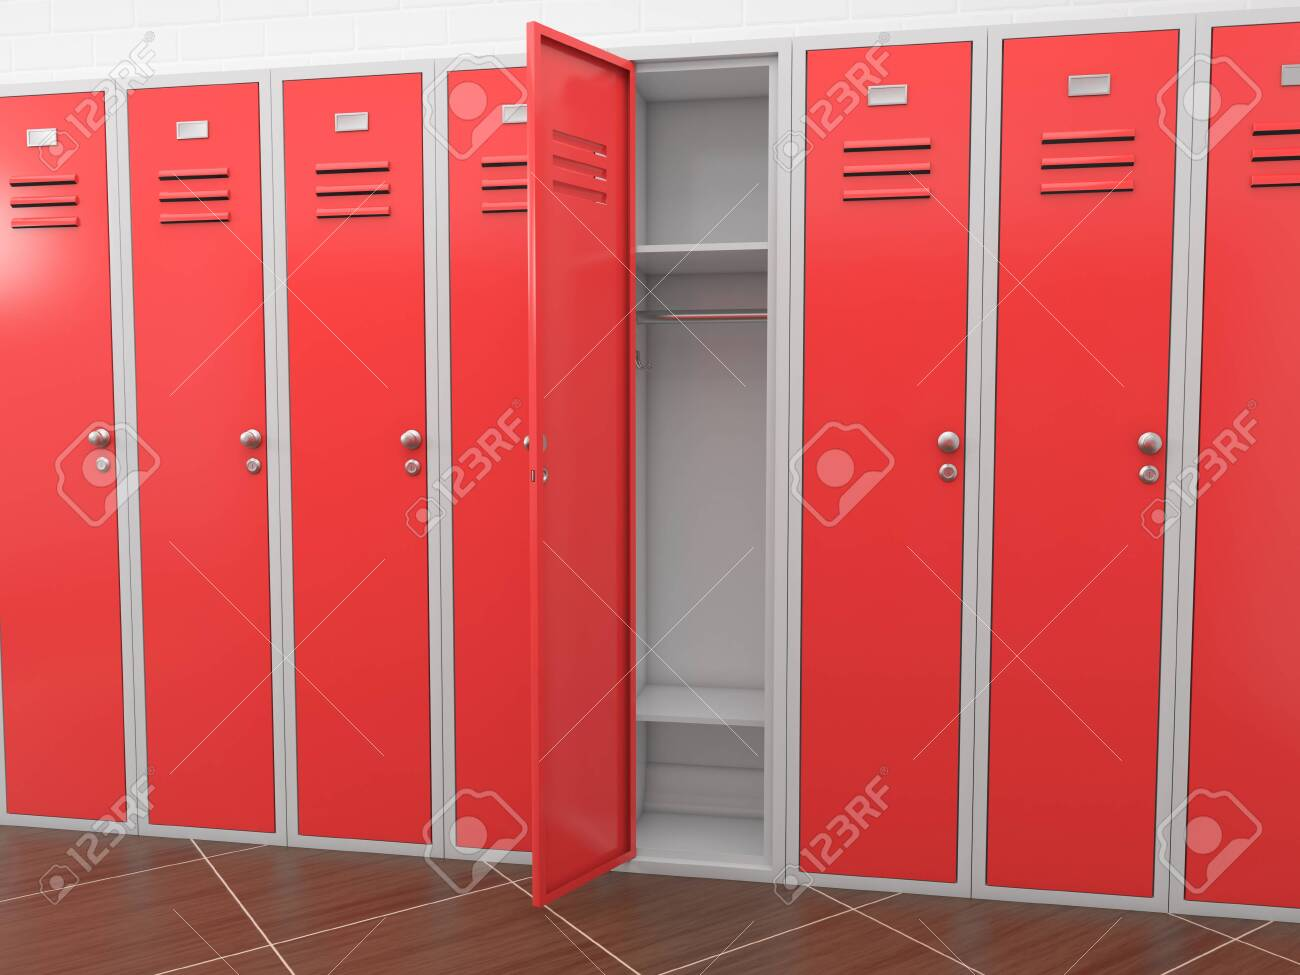 Red gym lockers in a room. 3d rendering illustration - 150191028